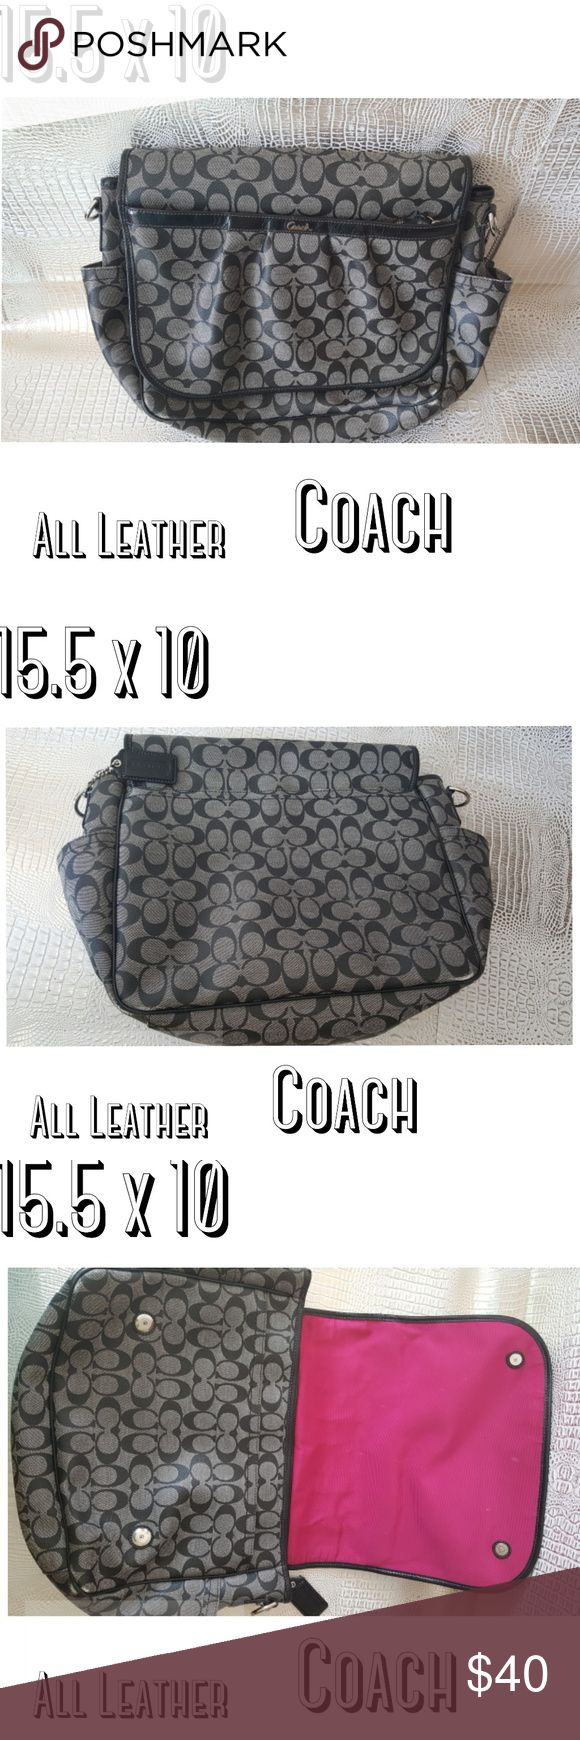 Coach Diaper bag signature print crossbody Coach diaper bag  baby work bag crossbody minor wear  Long strap included inside of bag  Pad not included  Was used as a work bag lots of pockets  Minor wear on corners  Please see pics   Pre owned condition *******All items are in pre owned condition, Nothing, unless noted , is brand new **** please ask questions Coach Bags Baby Bags